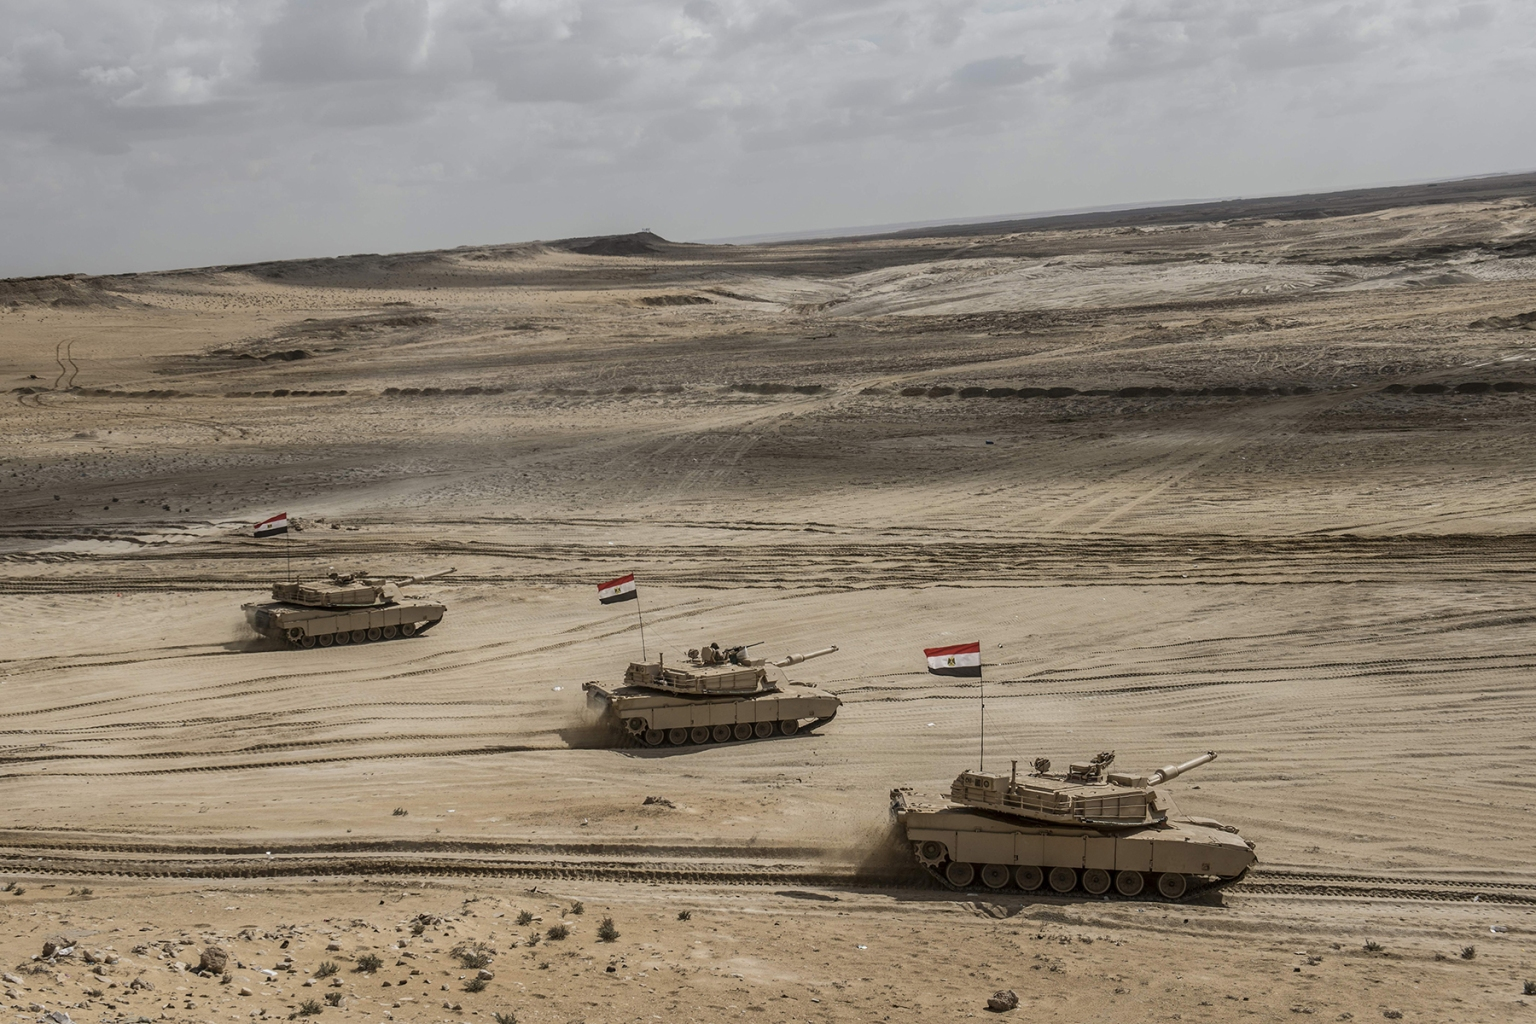 Egyptian tanks take part in Arab Shield military exercises art Matrouh Governorate Mohamed Naguib miilitary base, northwest of Cairo, on Nov. 15. Forces from Saudi Arabia, Egypt, the UAE, Kuwait, Bahrain, and Jordan are taking part in the maneuvers. KHALED DESOUKI/AFP/Getty Images